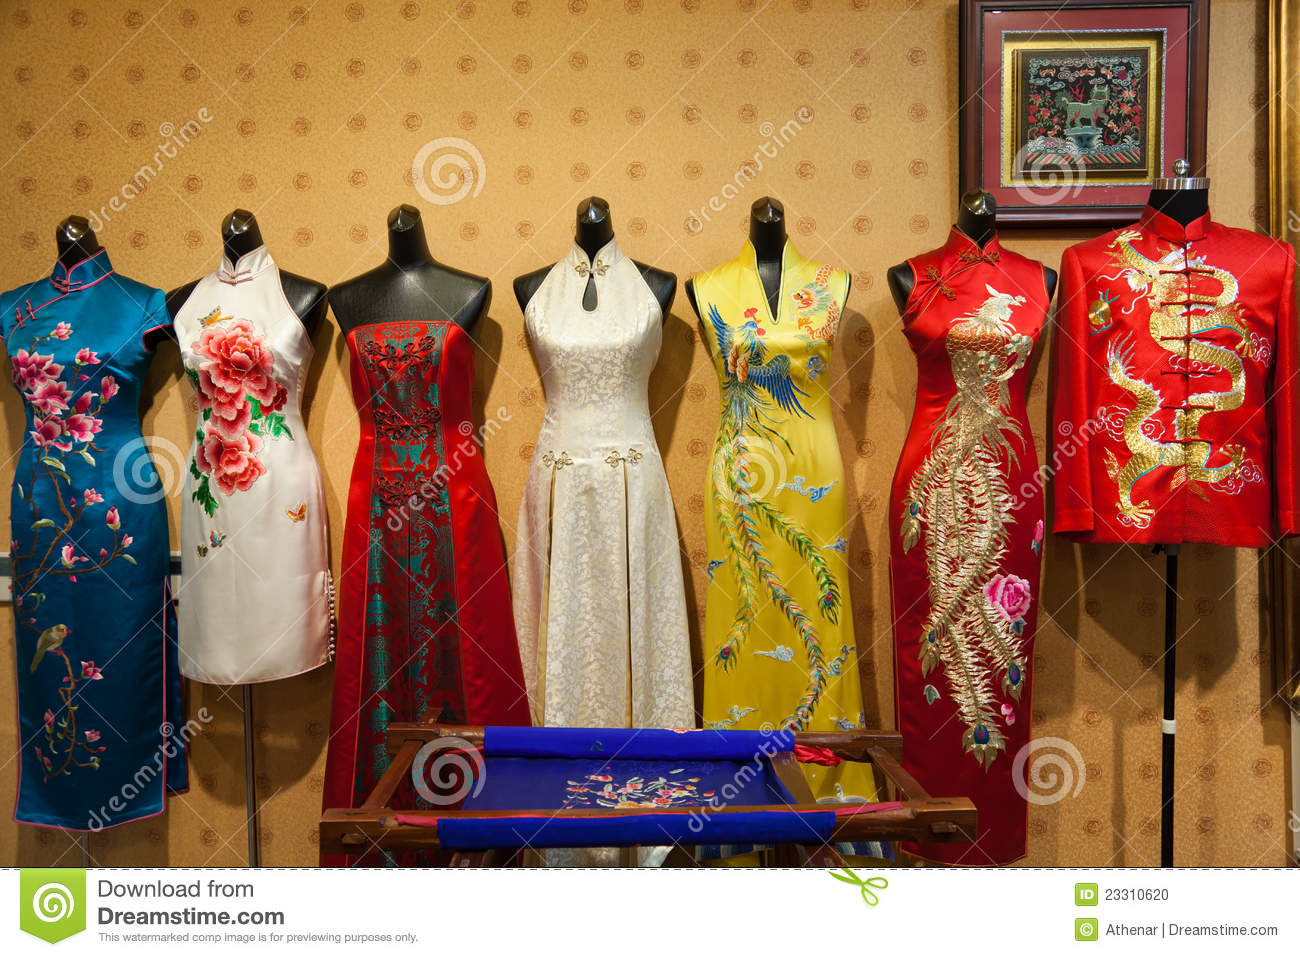 Chinese clothing store Cheap clothing stores